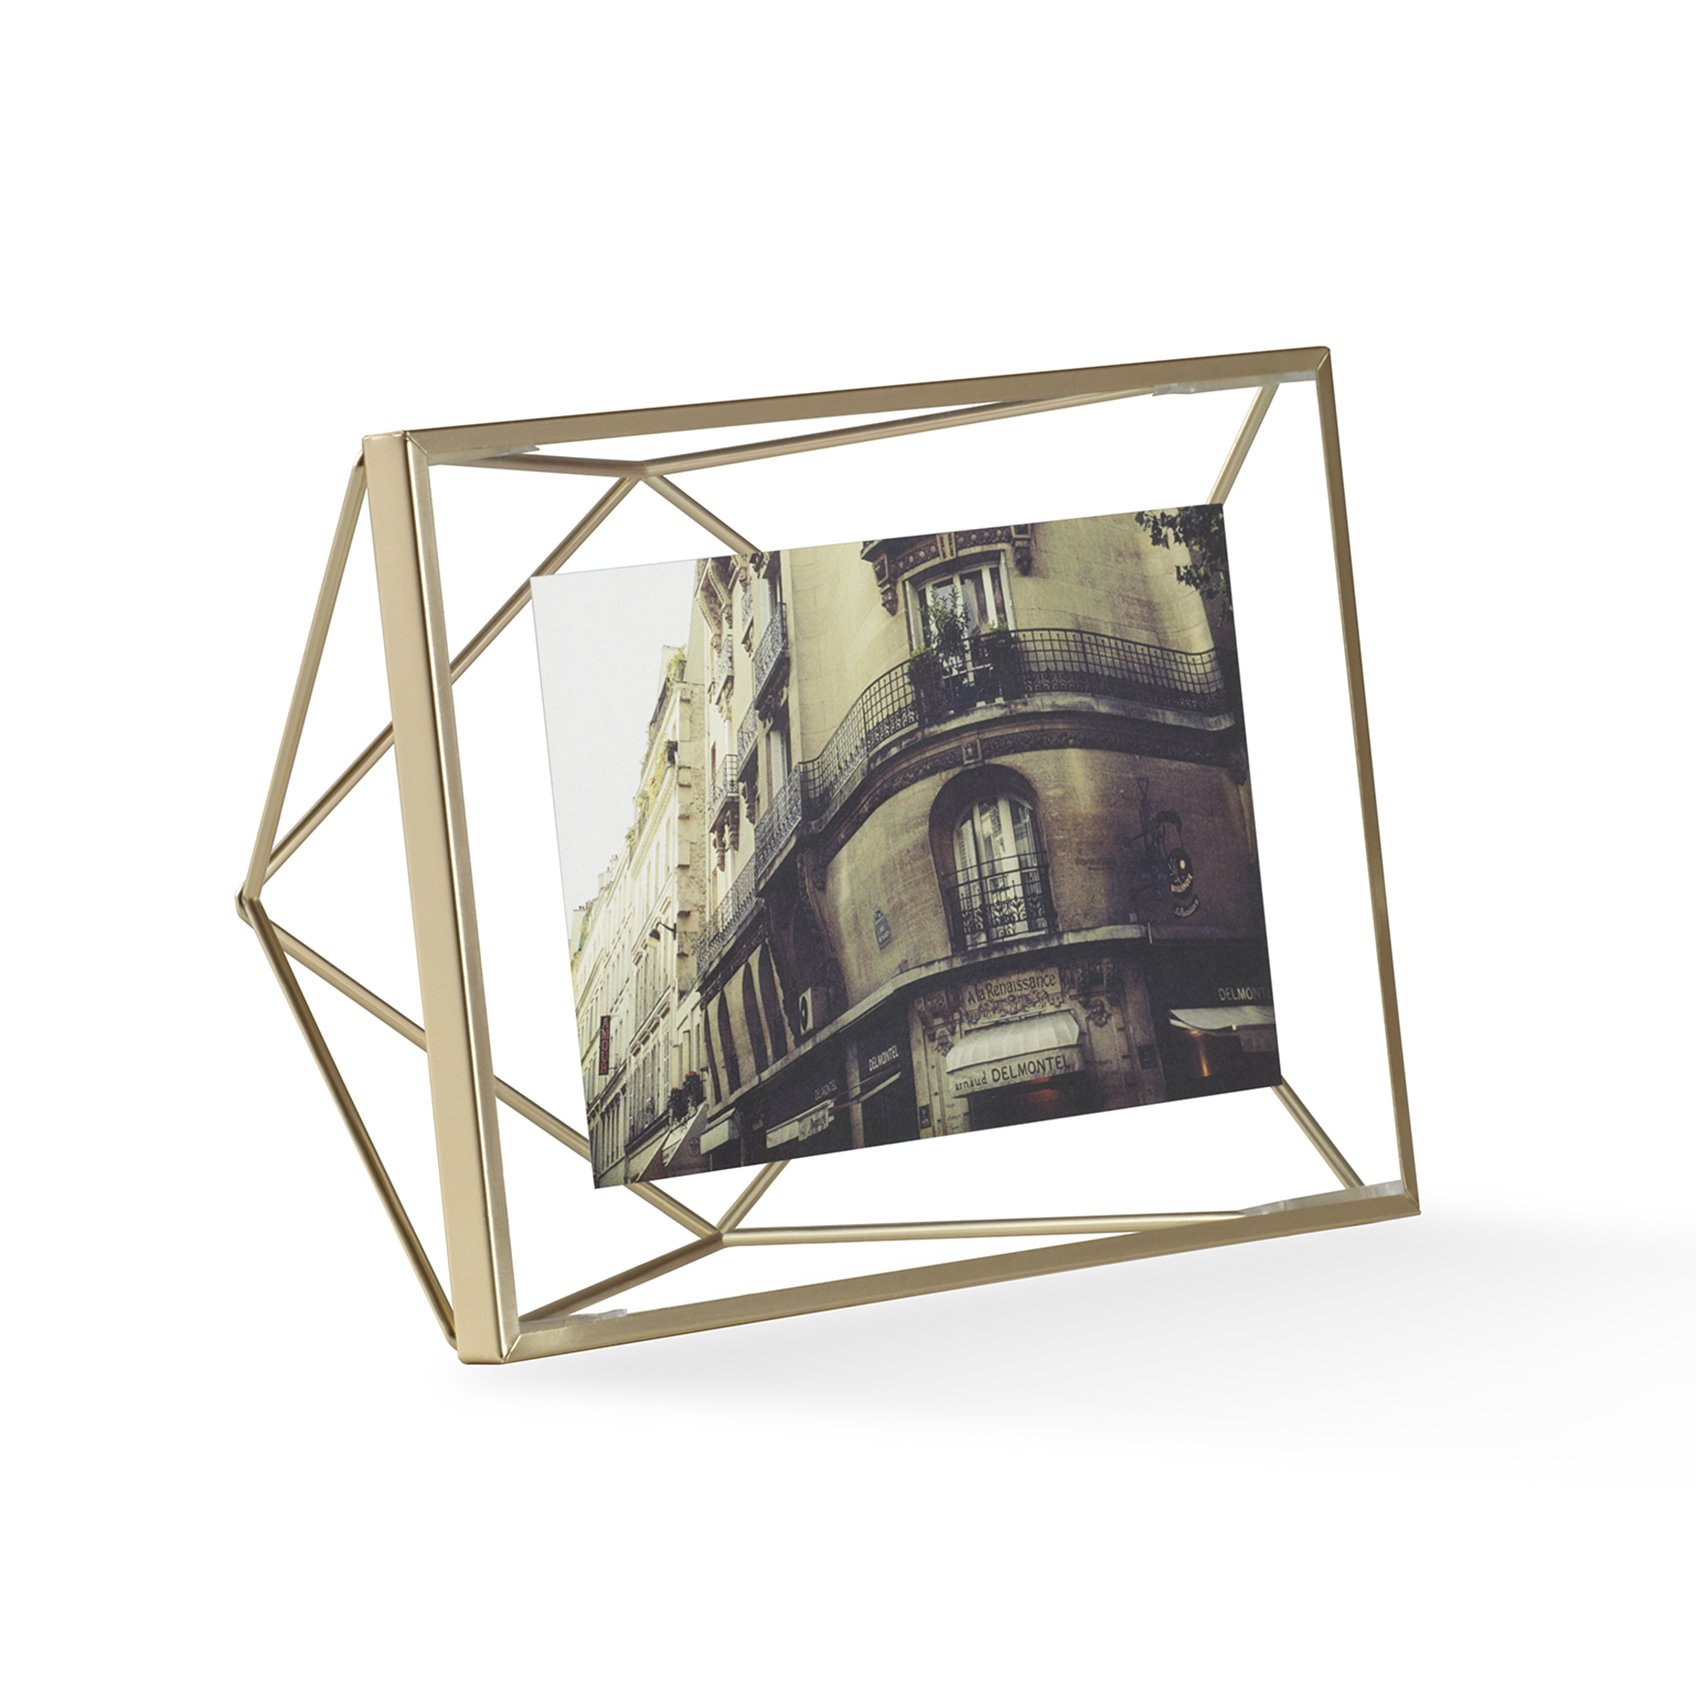 Umbra Prisma 4x6 Picture Frame – Floating Wall or Desk Photo Display for Pictures, Art, Illustrations, Graphic Text & More, Metal, Matte Brass